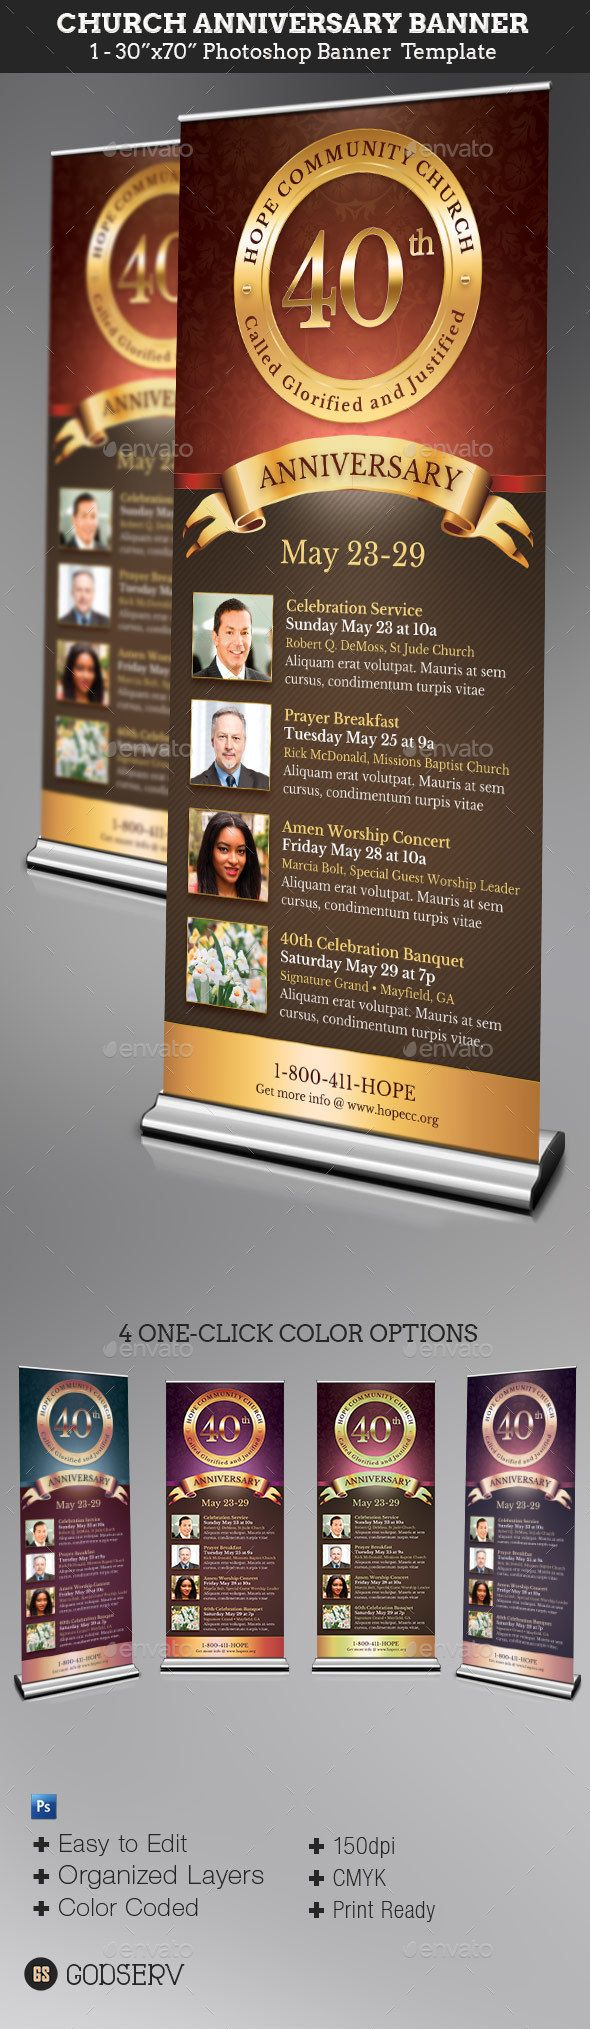 Dating banner psd